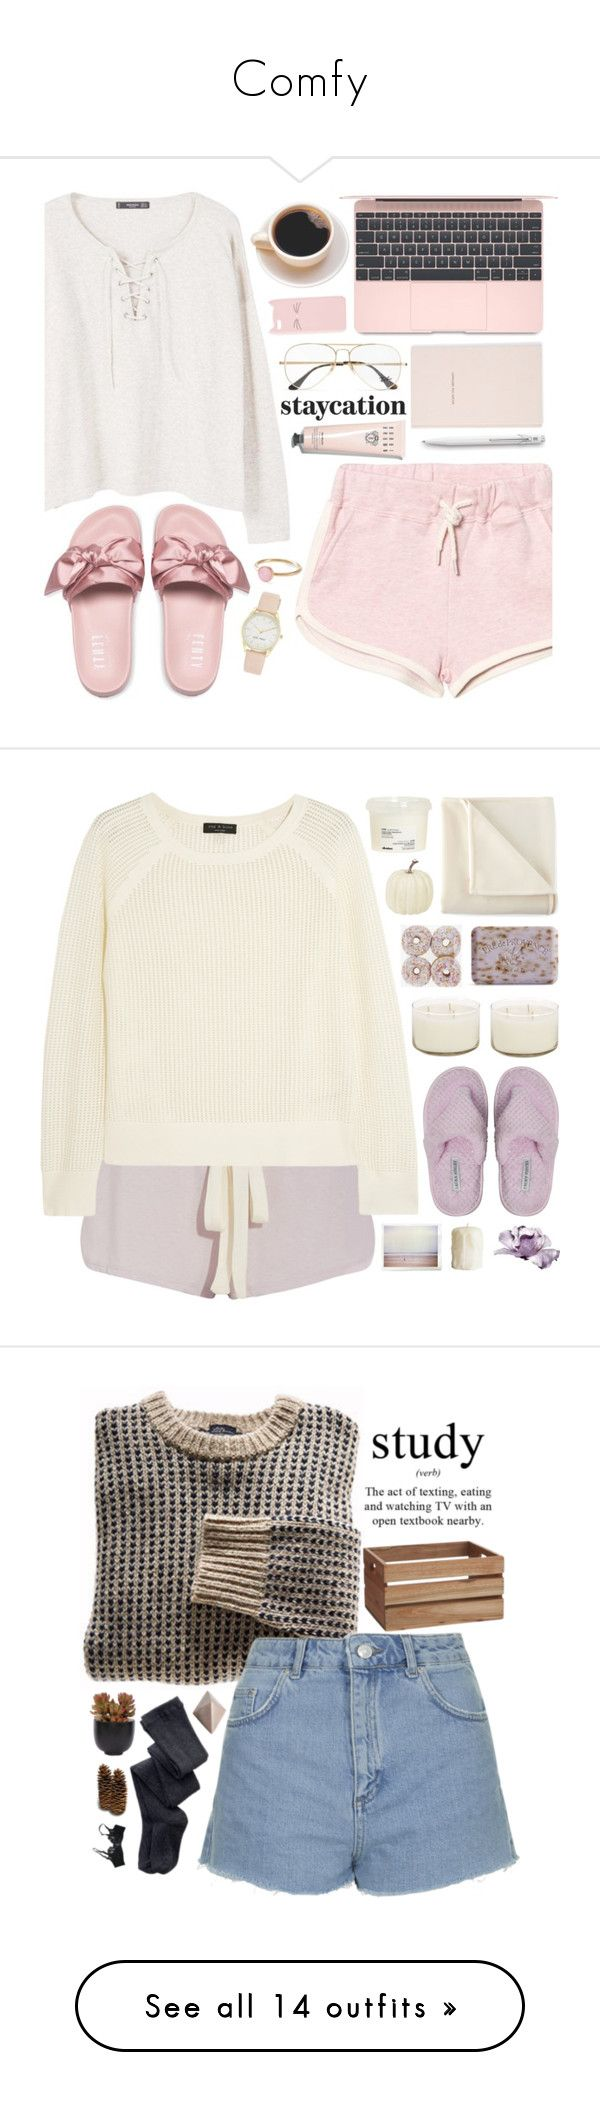 """Comfy"" by cherrysnoww ❤ liked on Polyvore featuring MANGO, Ray-Ban, Kate Spade, Bobbi Brown Cosmetics, Caran d'Ache, Charlotte Russe, Puma, Nine West, Pernille Corydon and Summer"